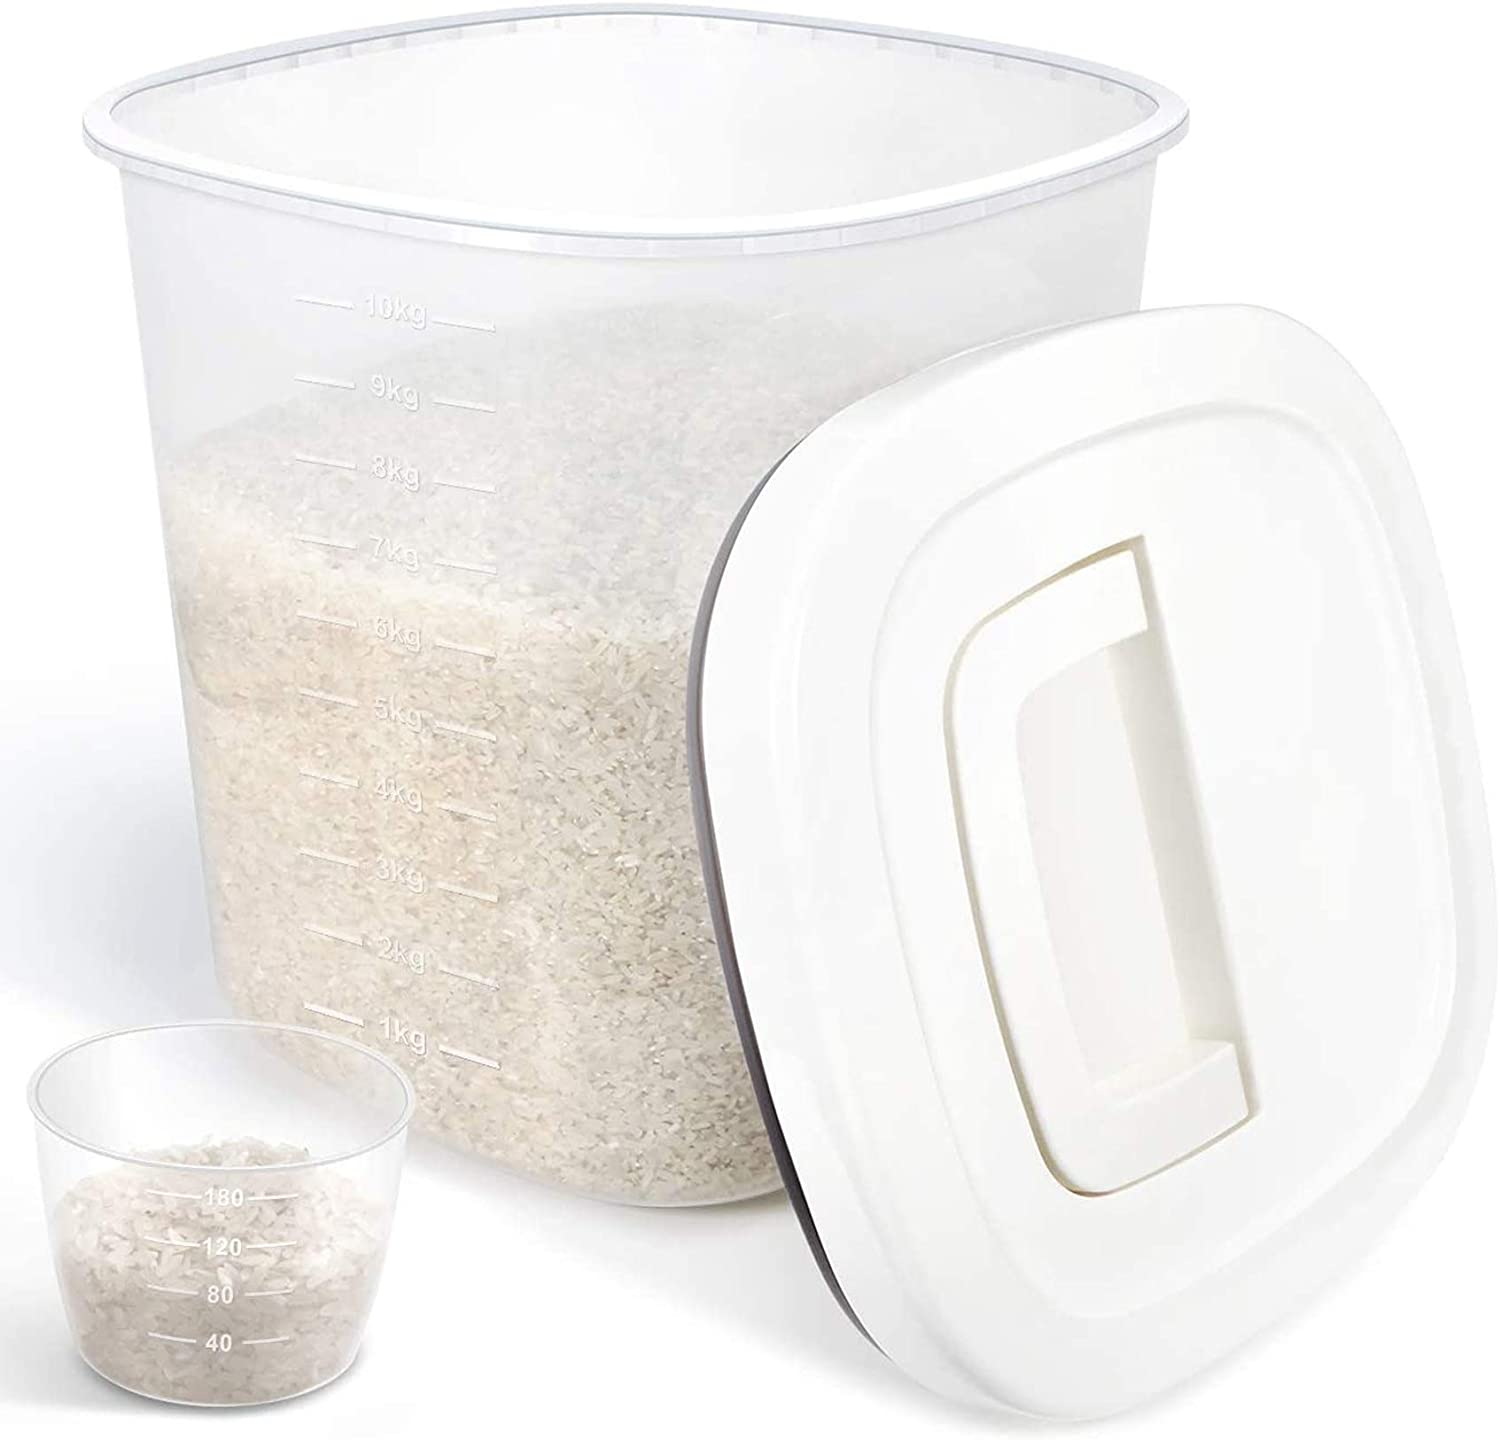 ODOM Airtight BPA Free Plastic Food Storage Container with Seal Lid + Measuring Cup, 10L 20Lbs Pantry Storage Container for Dry Food Cereal Flour Rice Sugar, Dog Food etc, Kitchen Storage Container